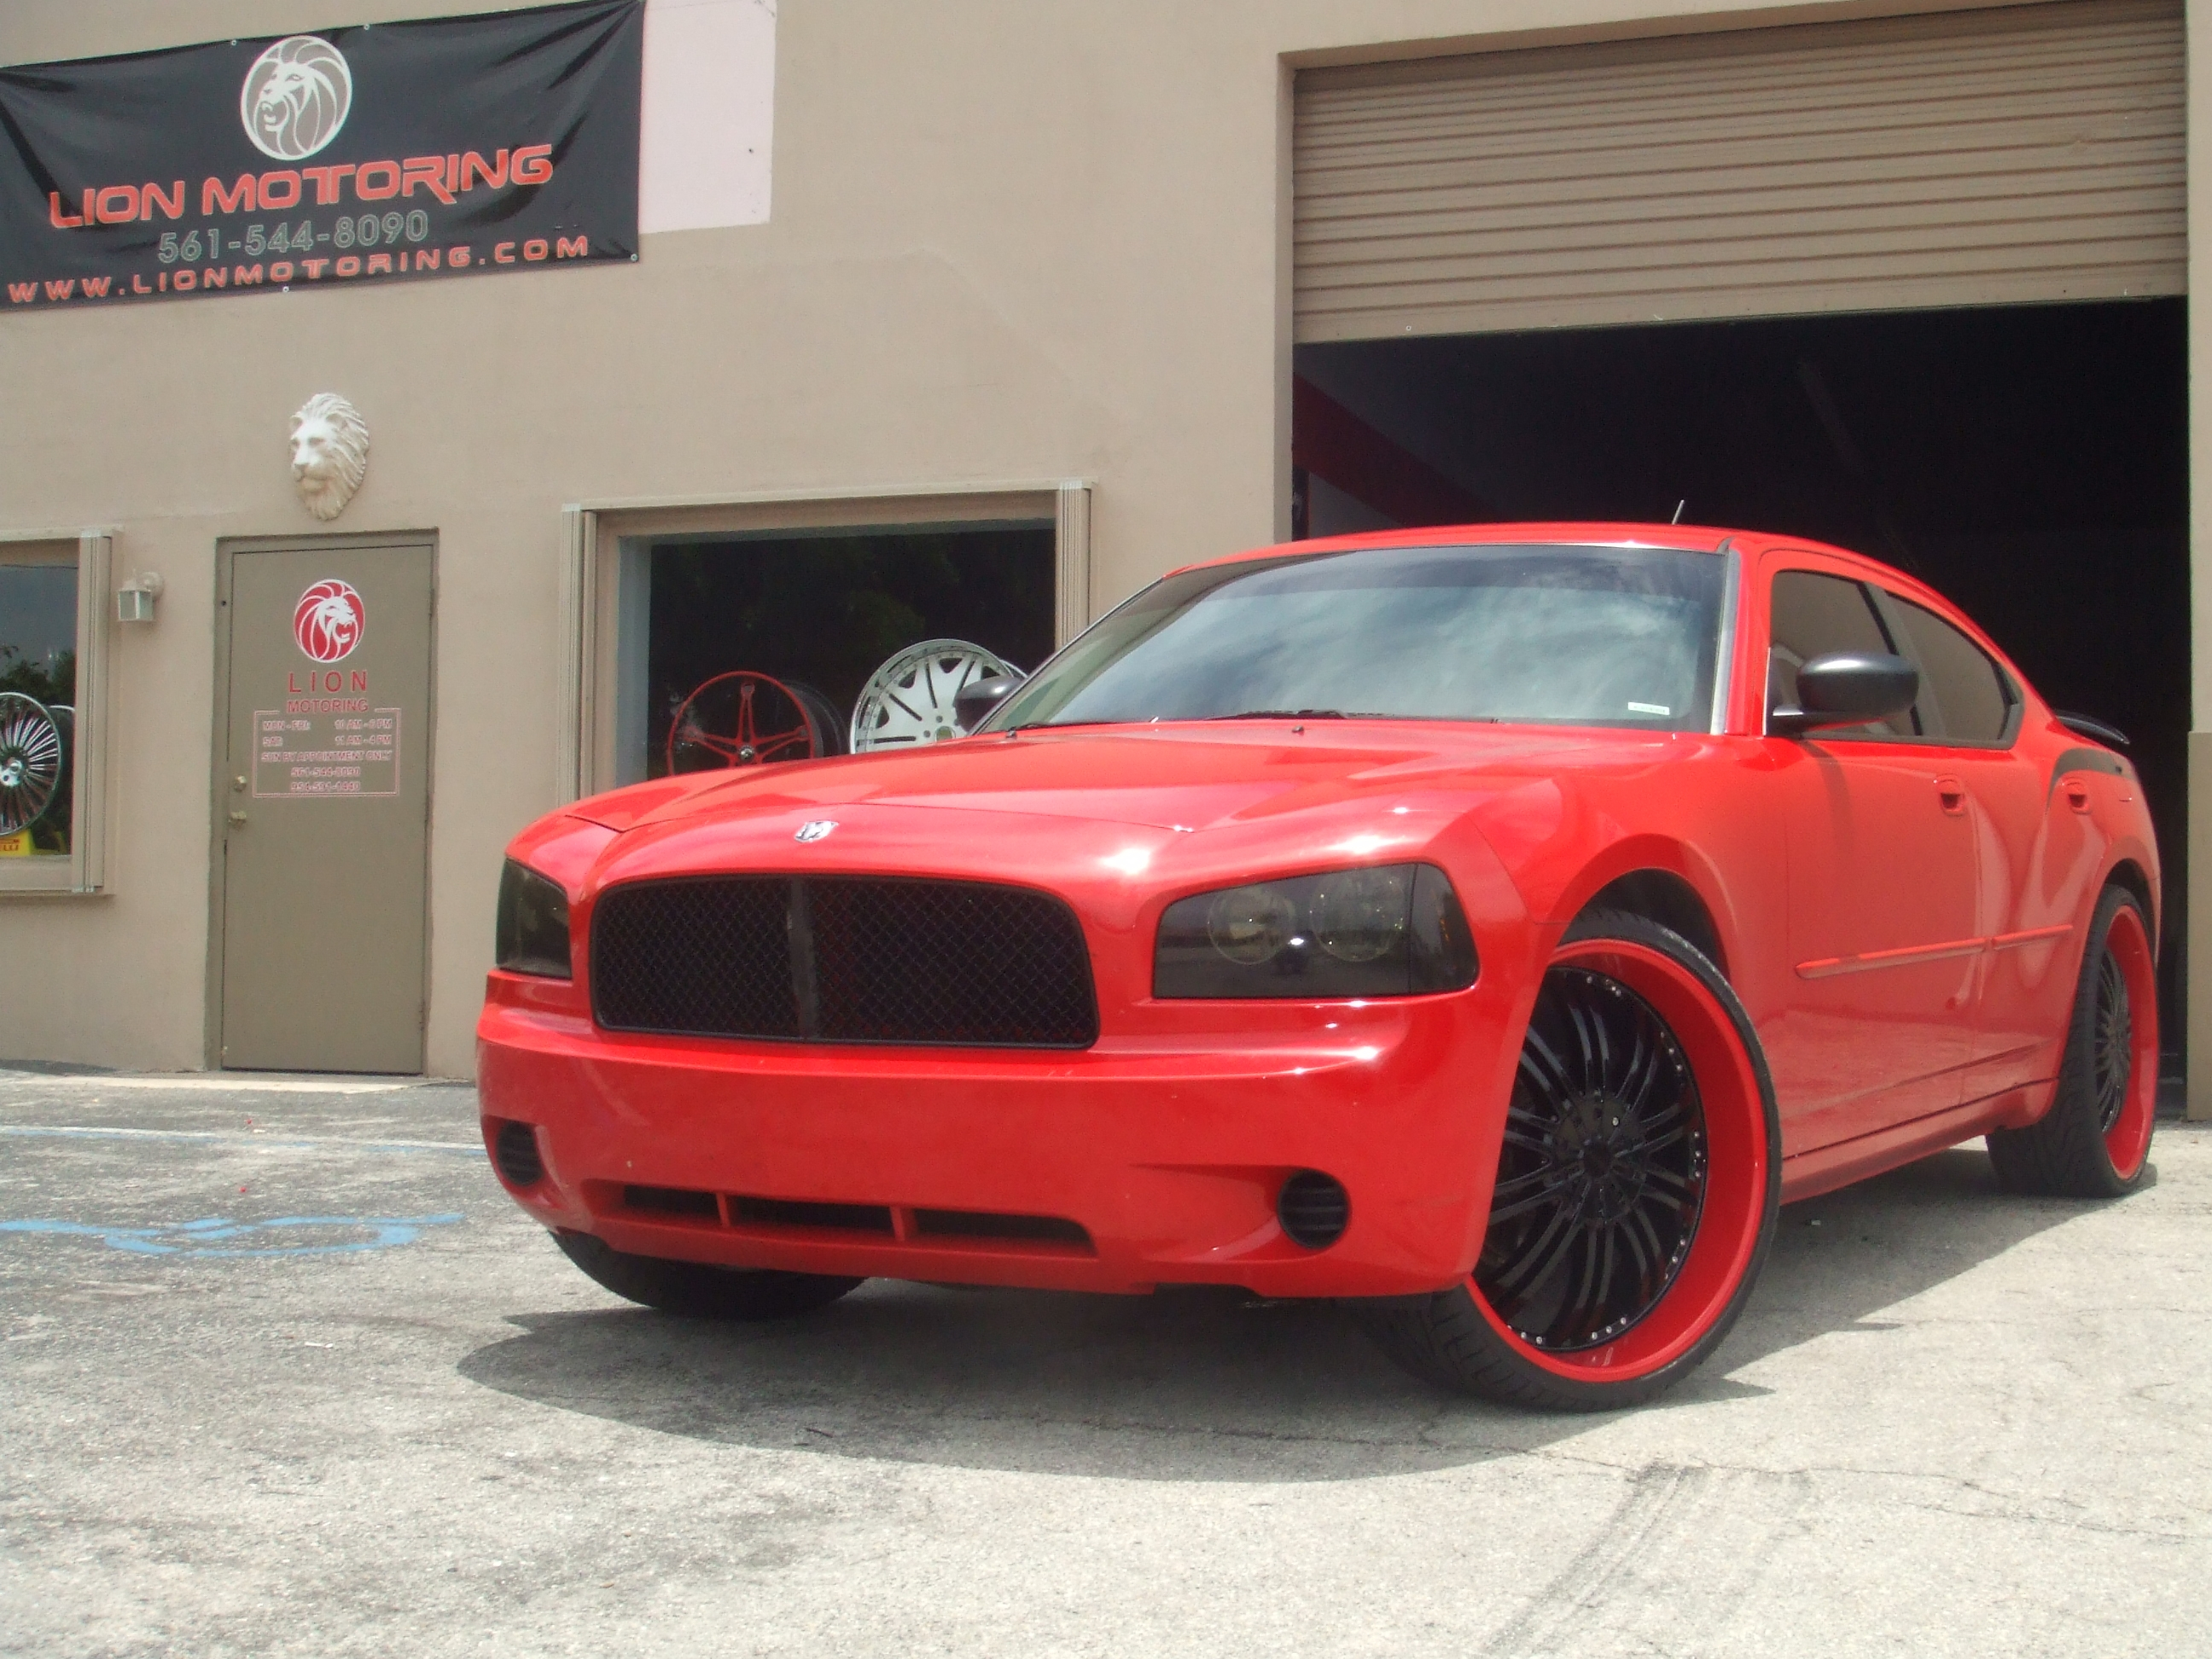 LION_MOTORING 2010 Dodge Charger 14776701